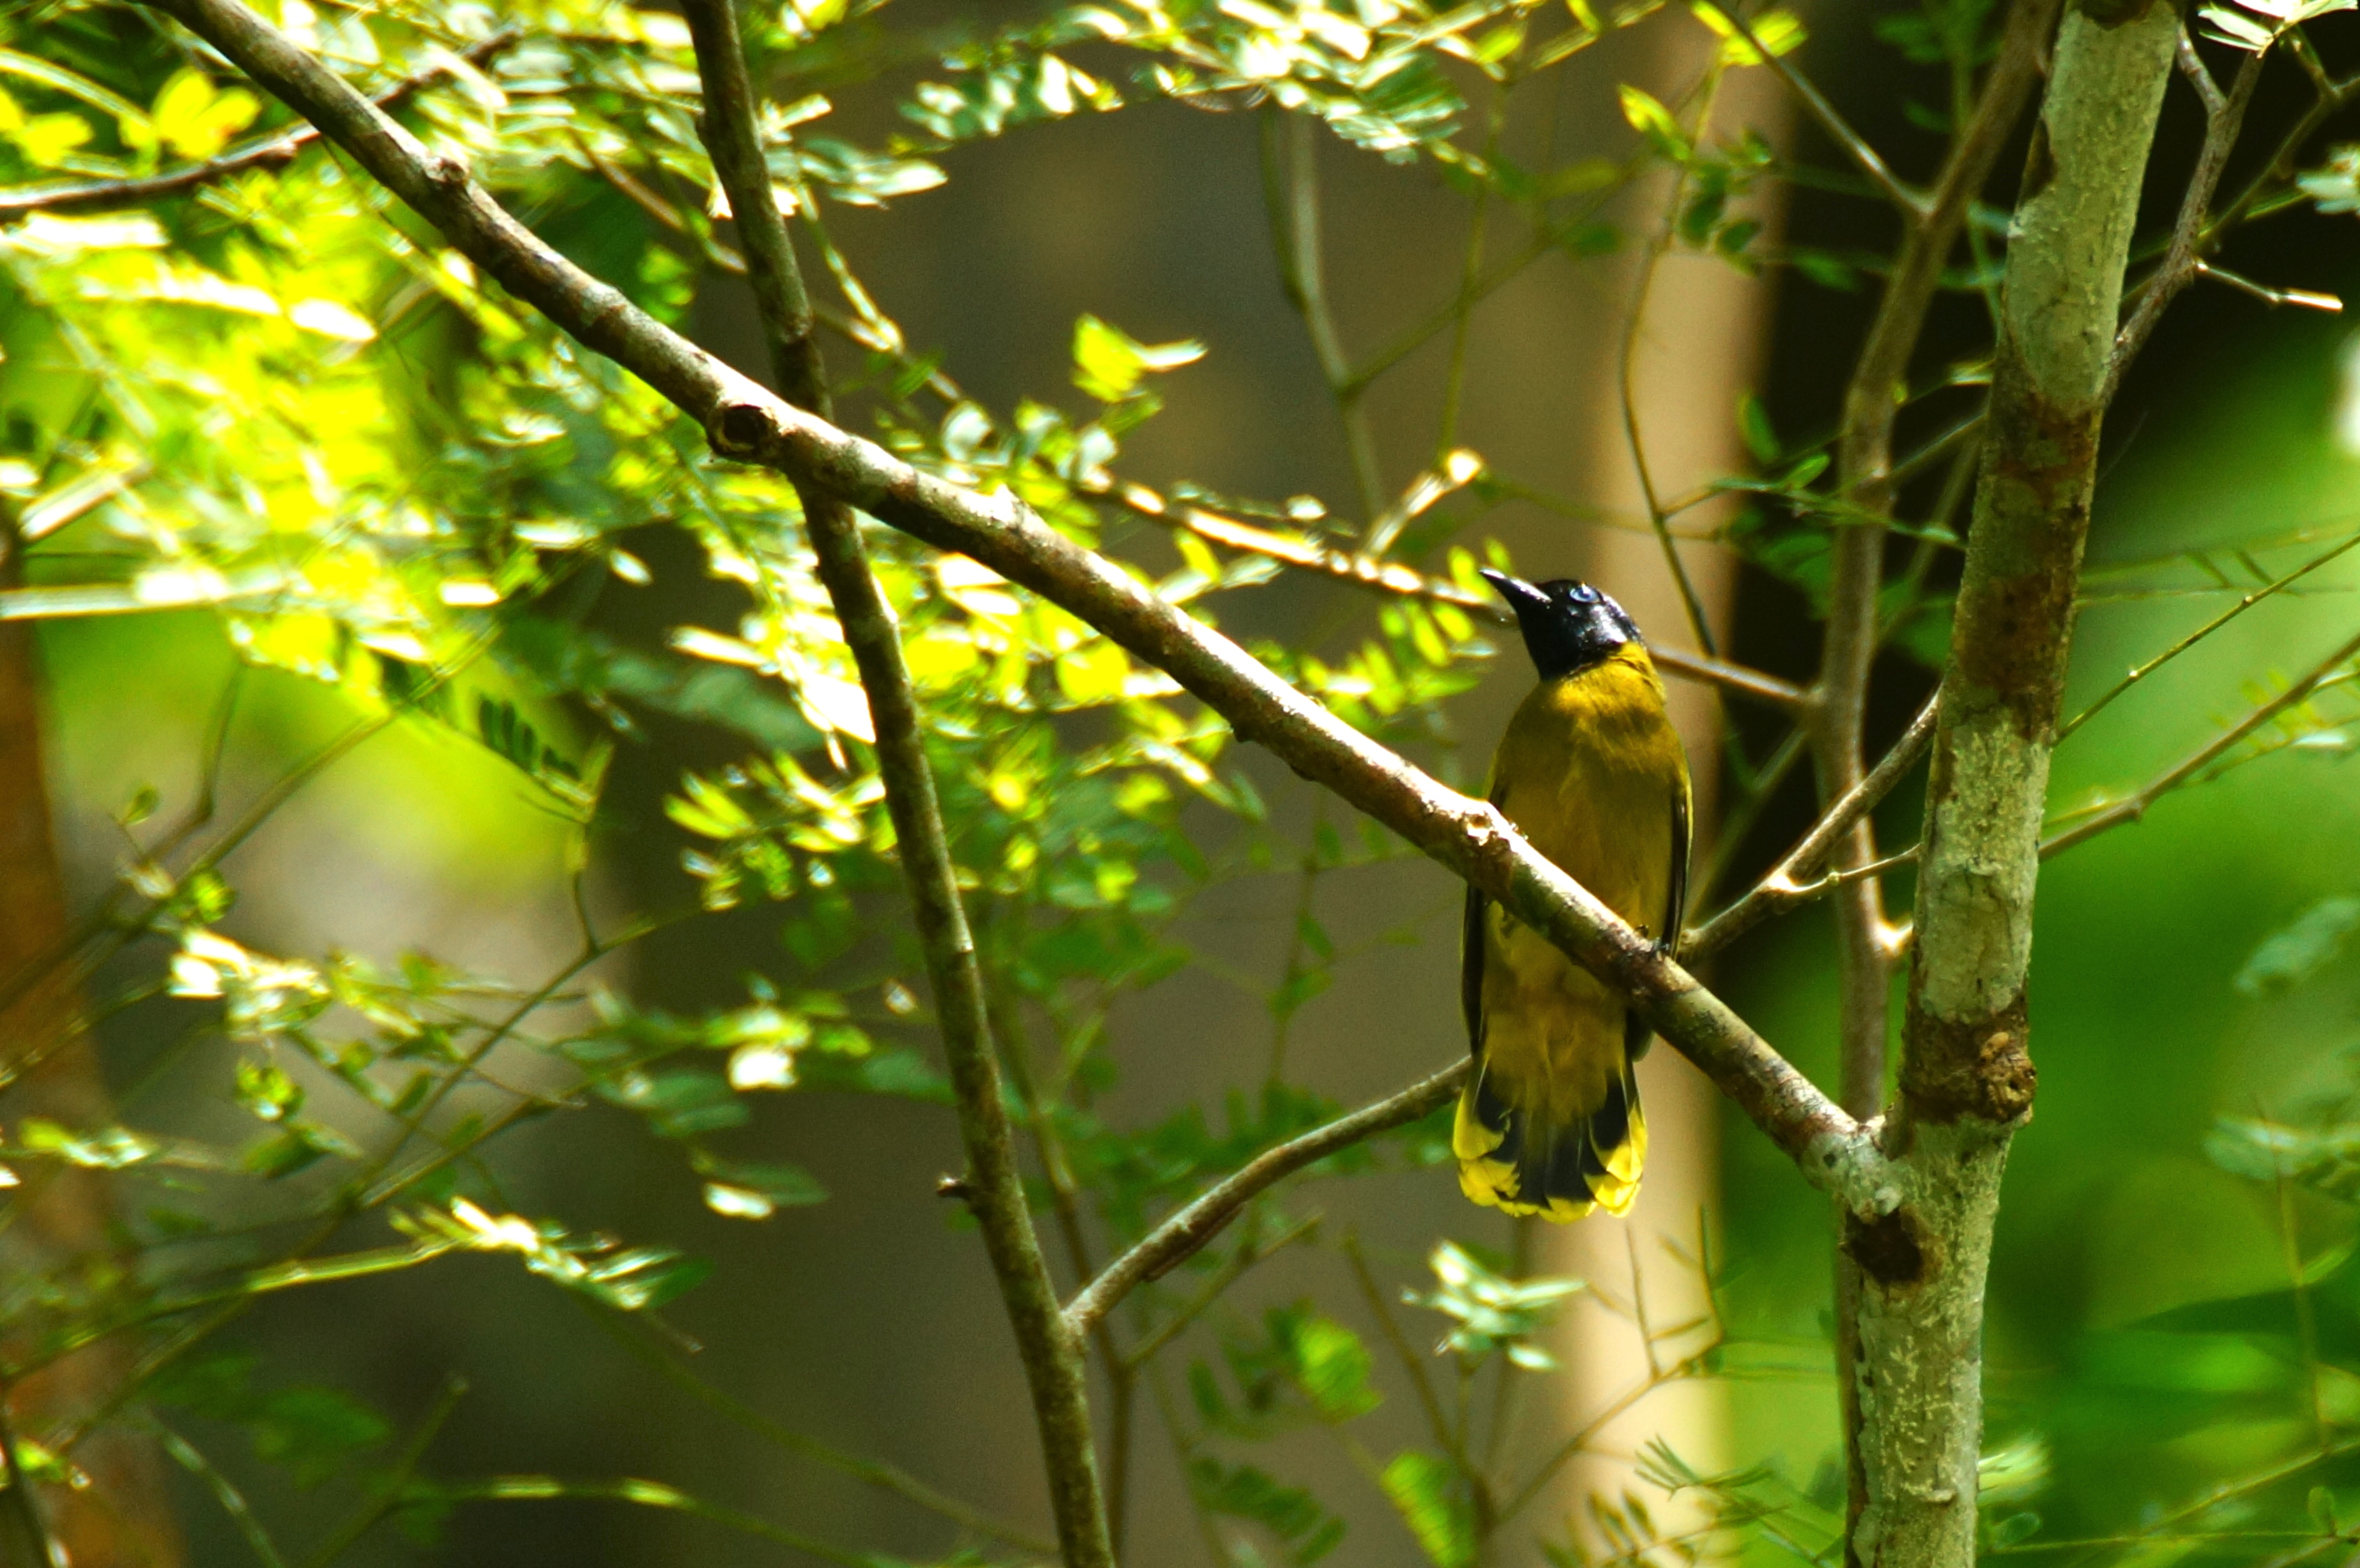 Black-headed bulbul.